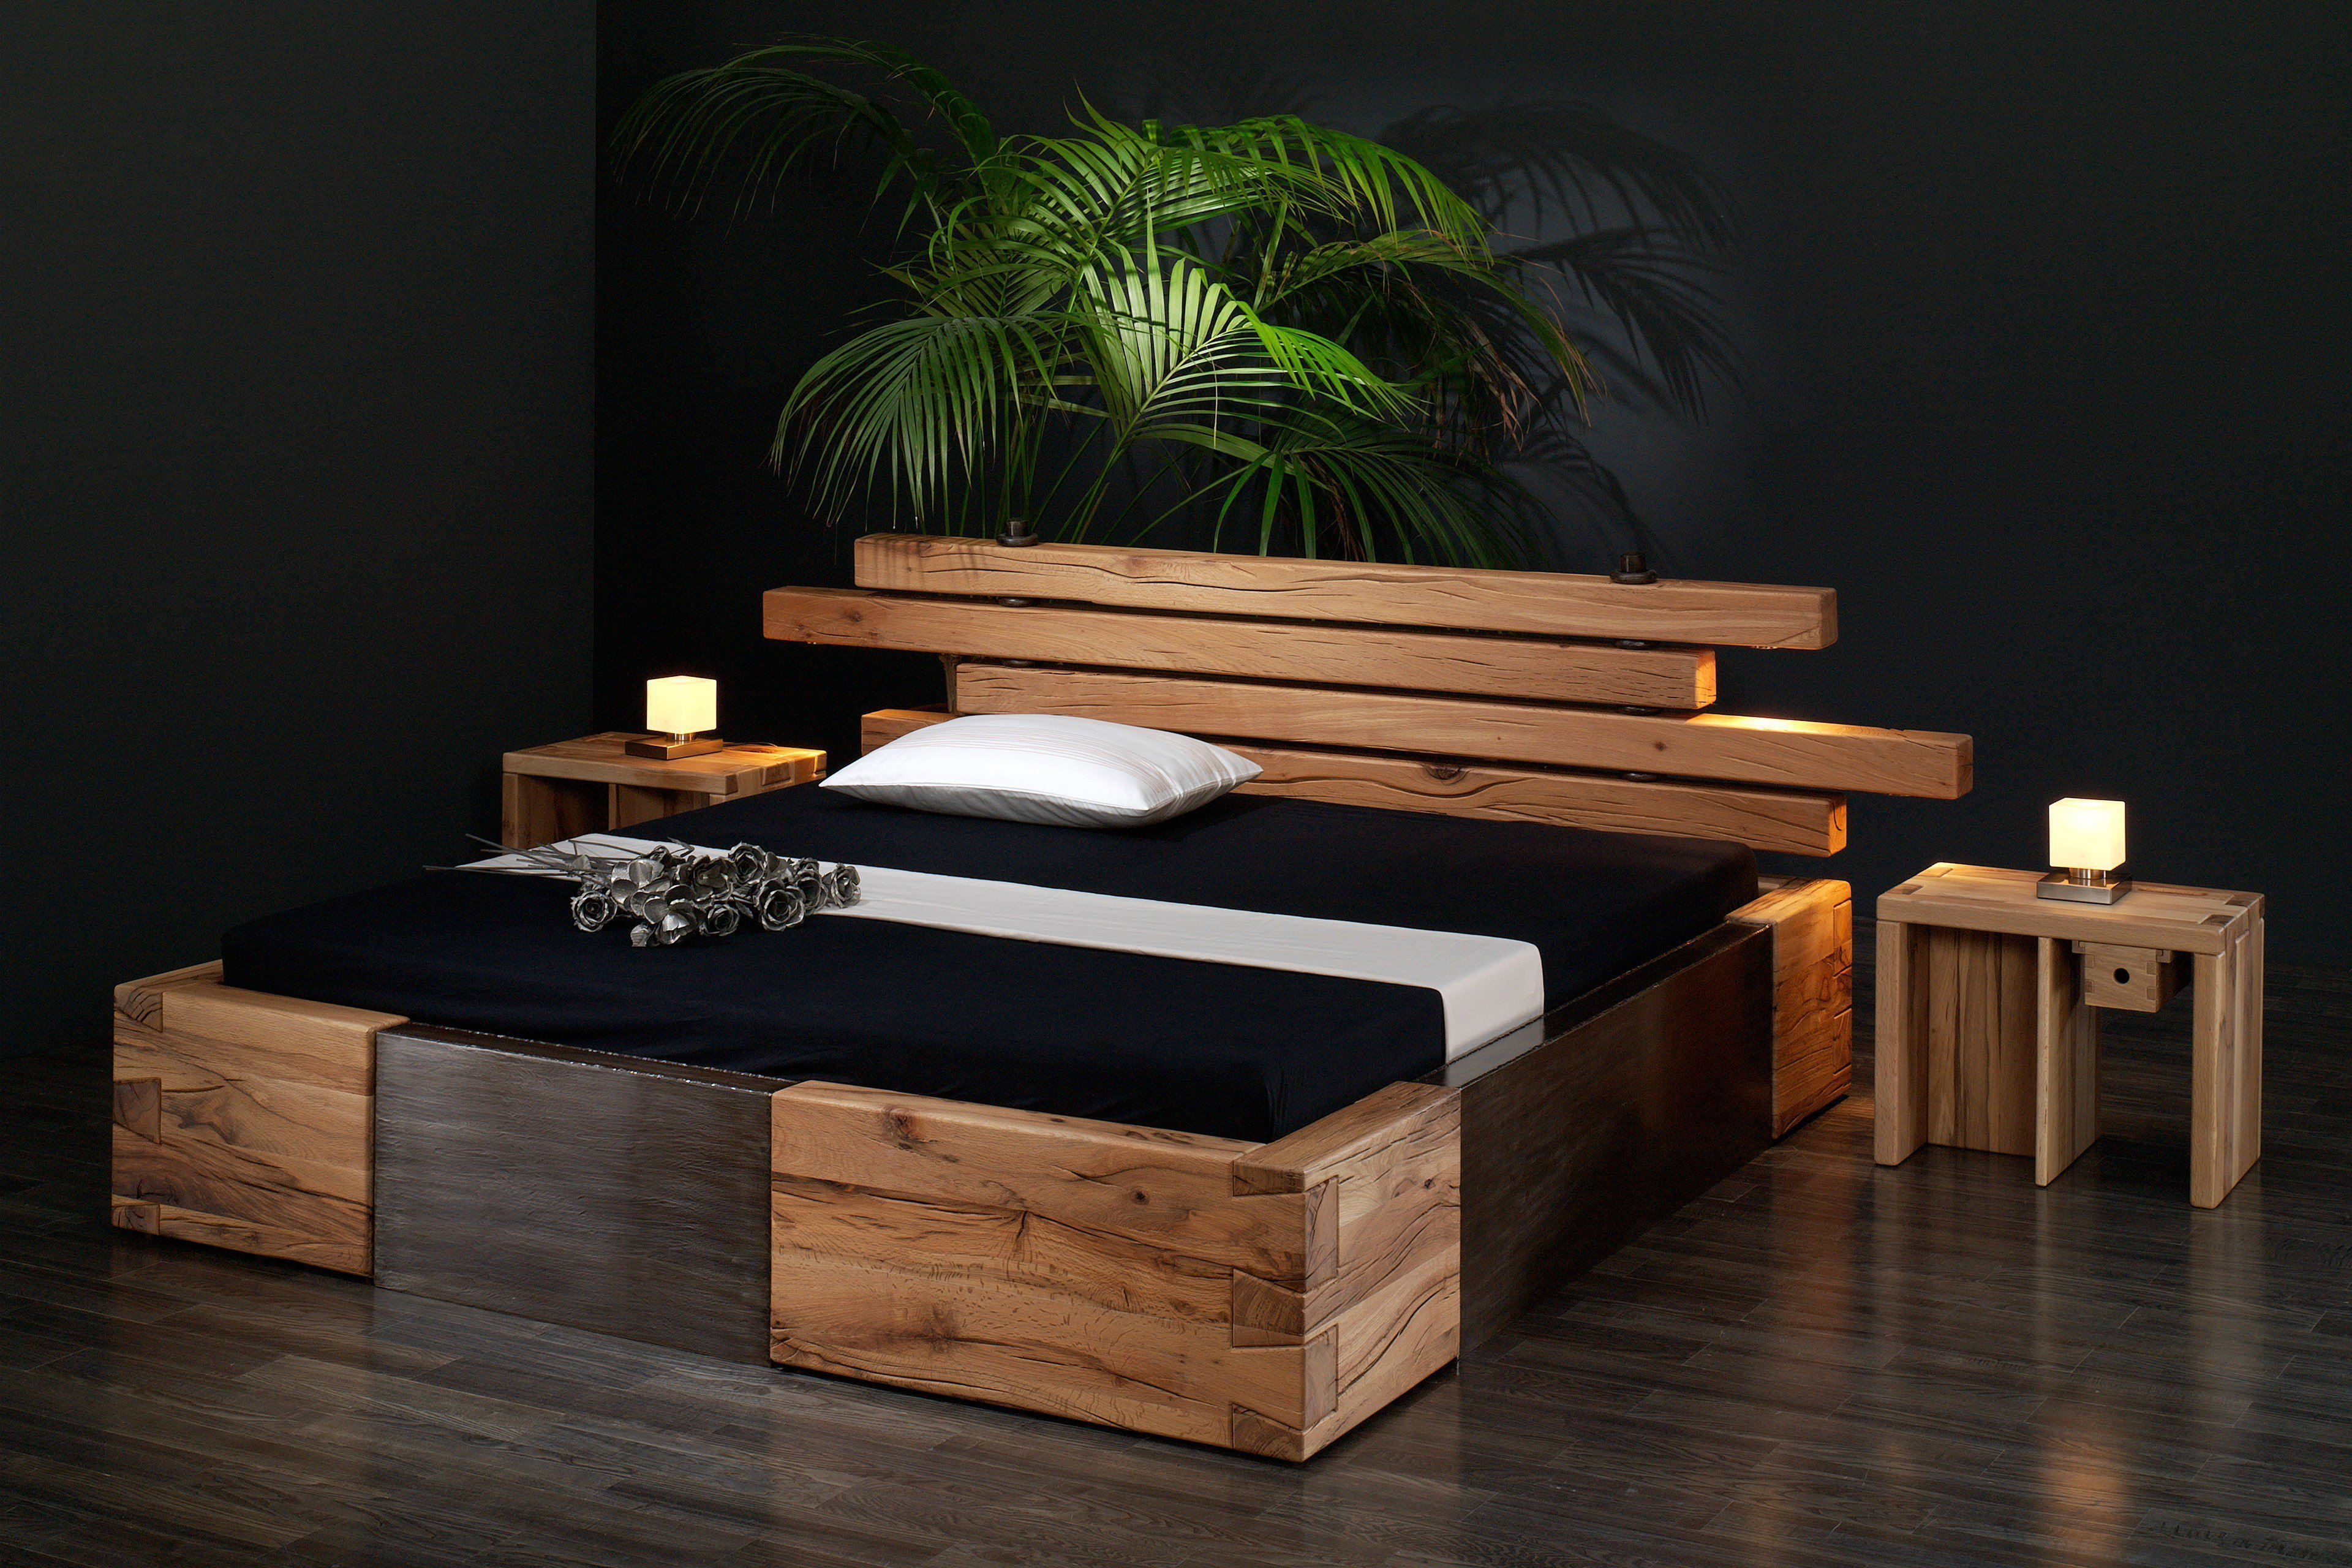 sprenger bett brunhilde sumpfeiche eisen m bel letz ihr online shop. Black Bedroom Furniture Sets. Home Design Ideas